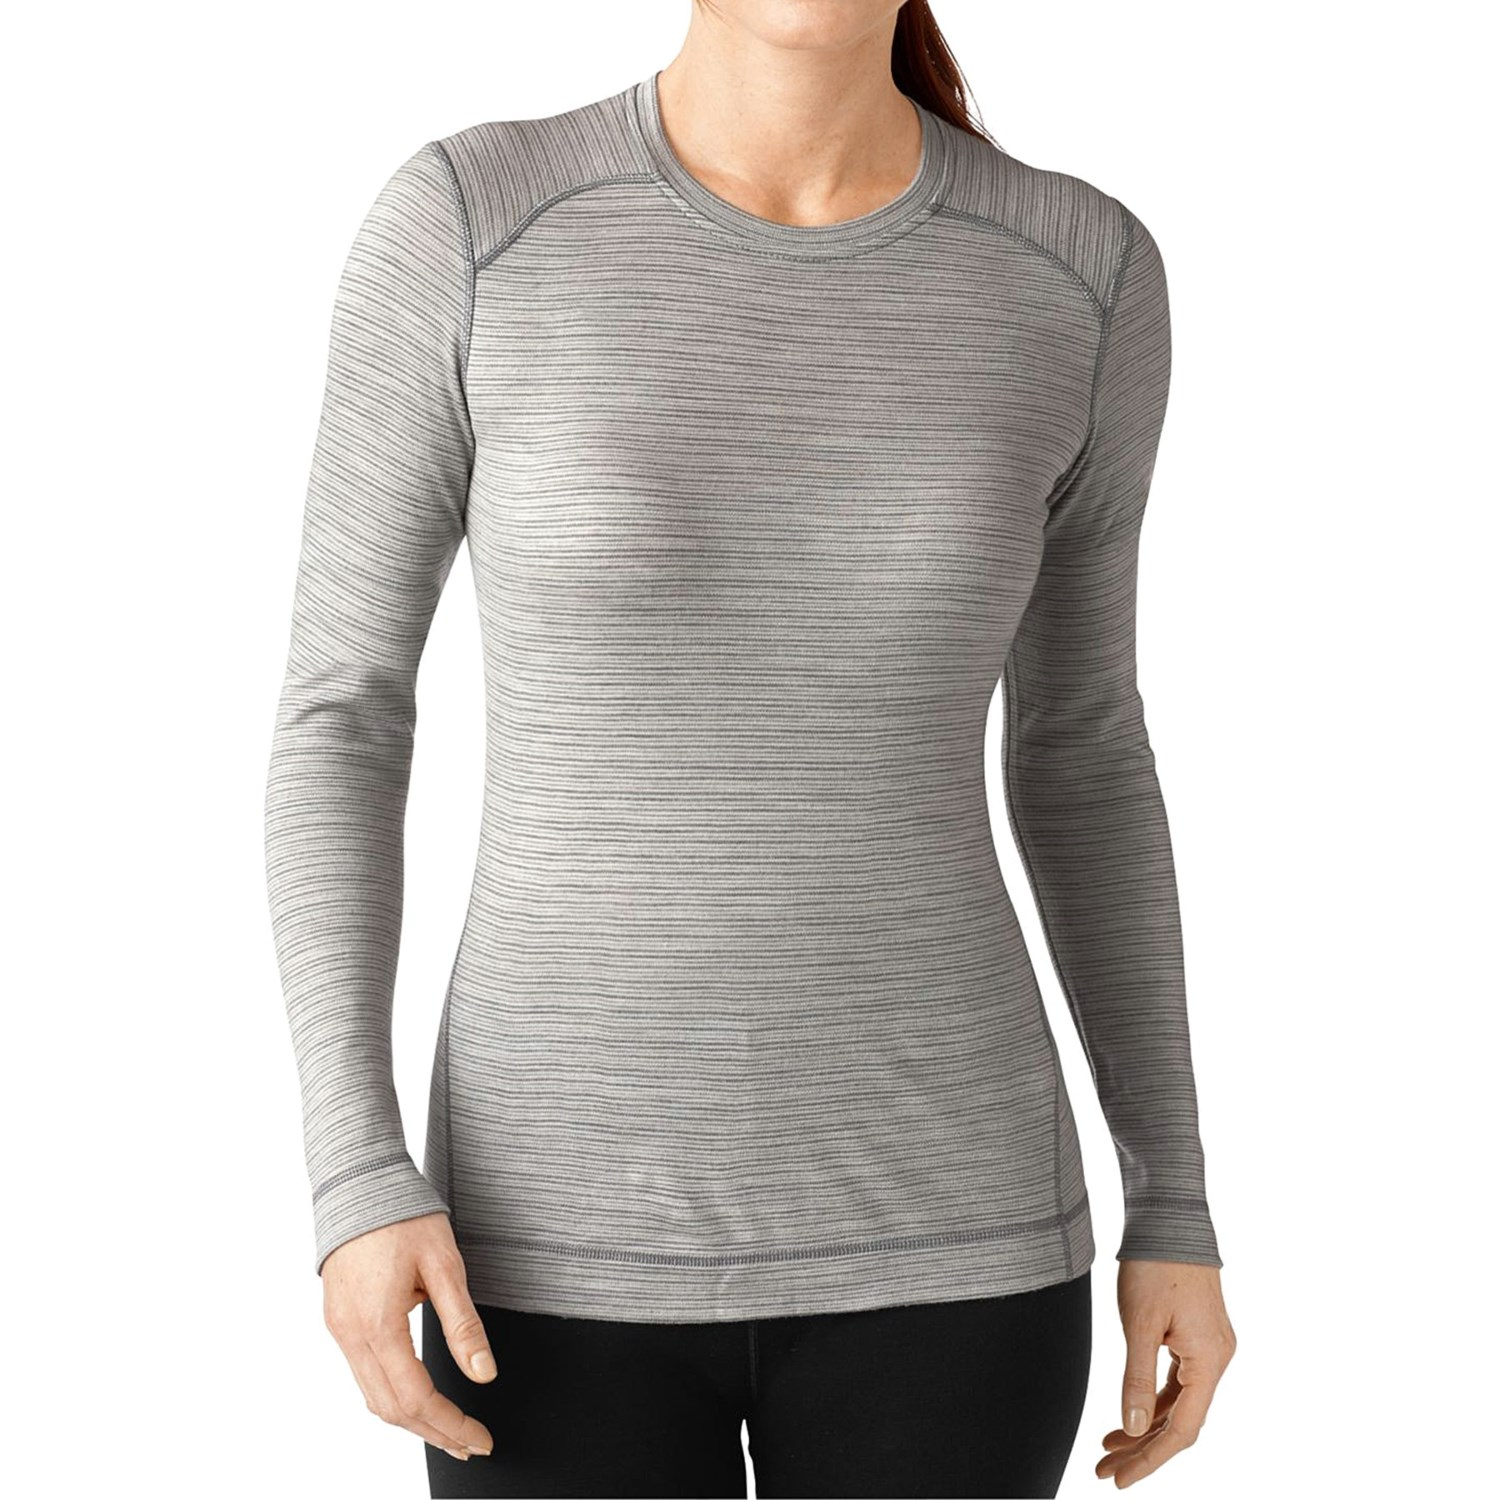 Smartwool nts 250 pattern base layer top for women for Merino wool shirts for travel